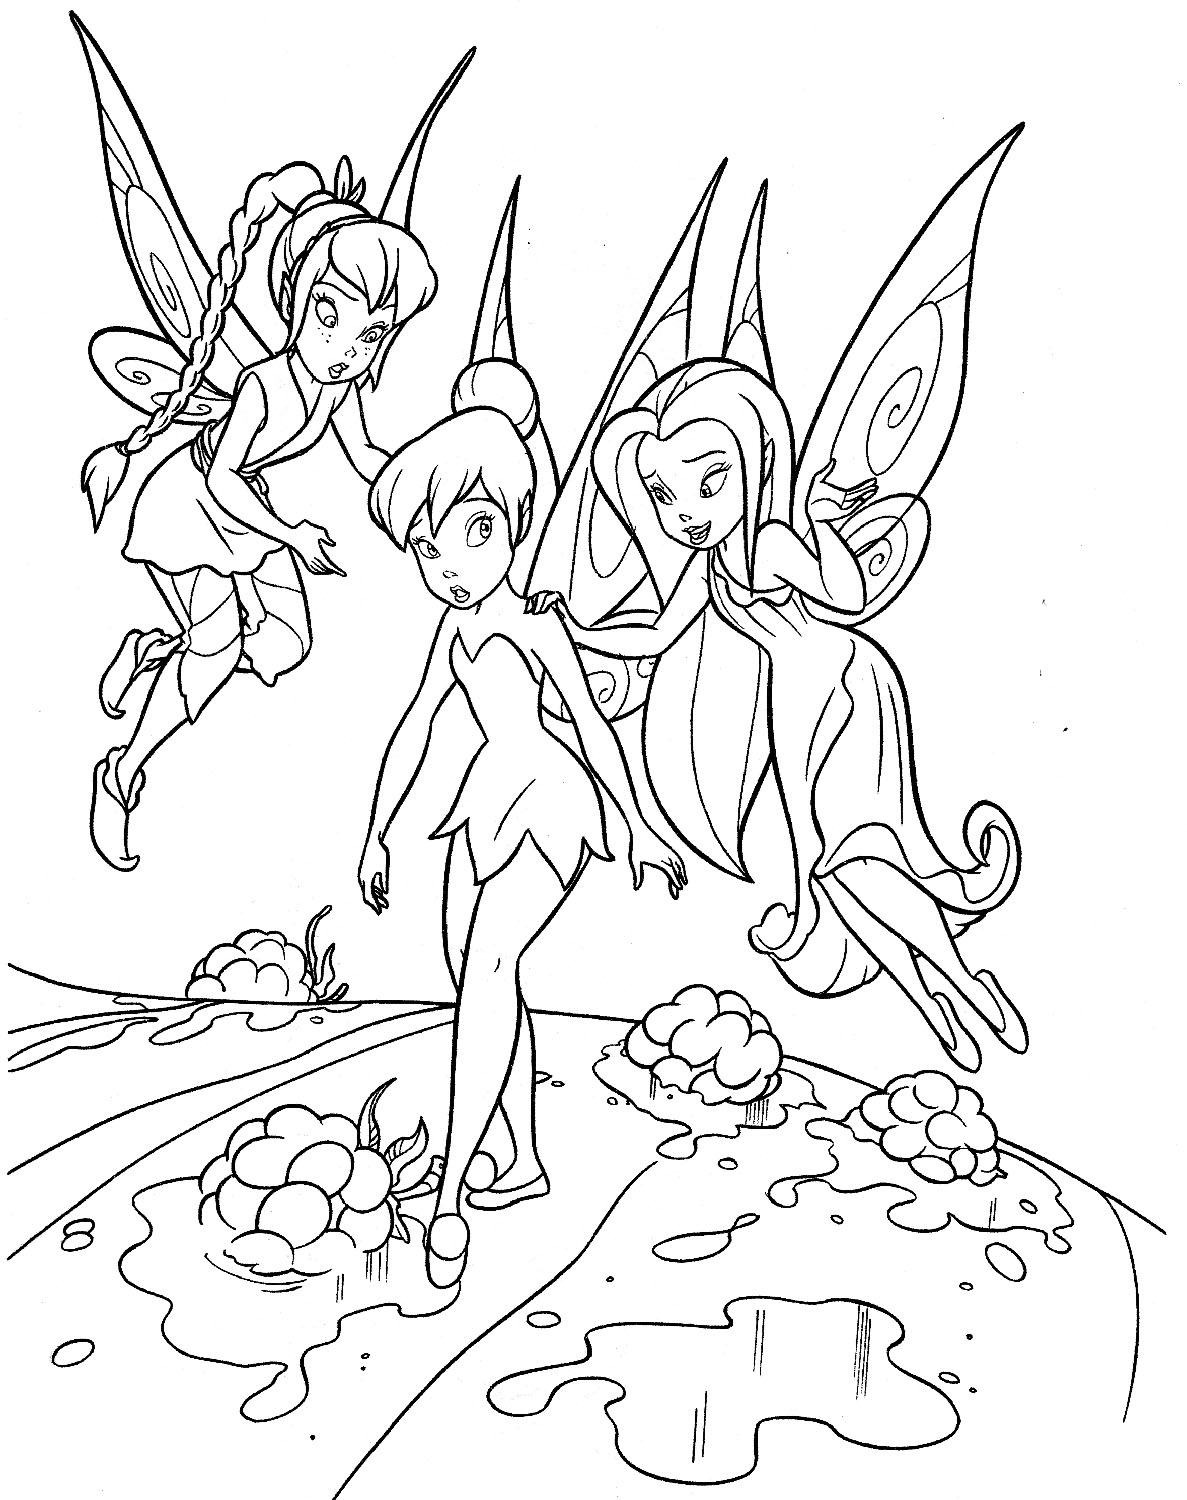 Worksheet. Printable Coloring Pages Tinkerbell